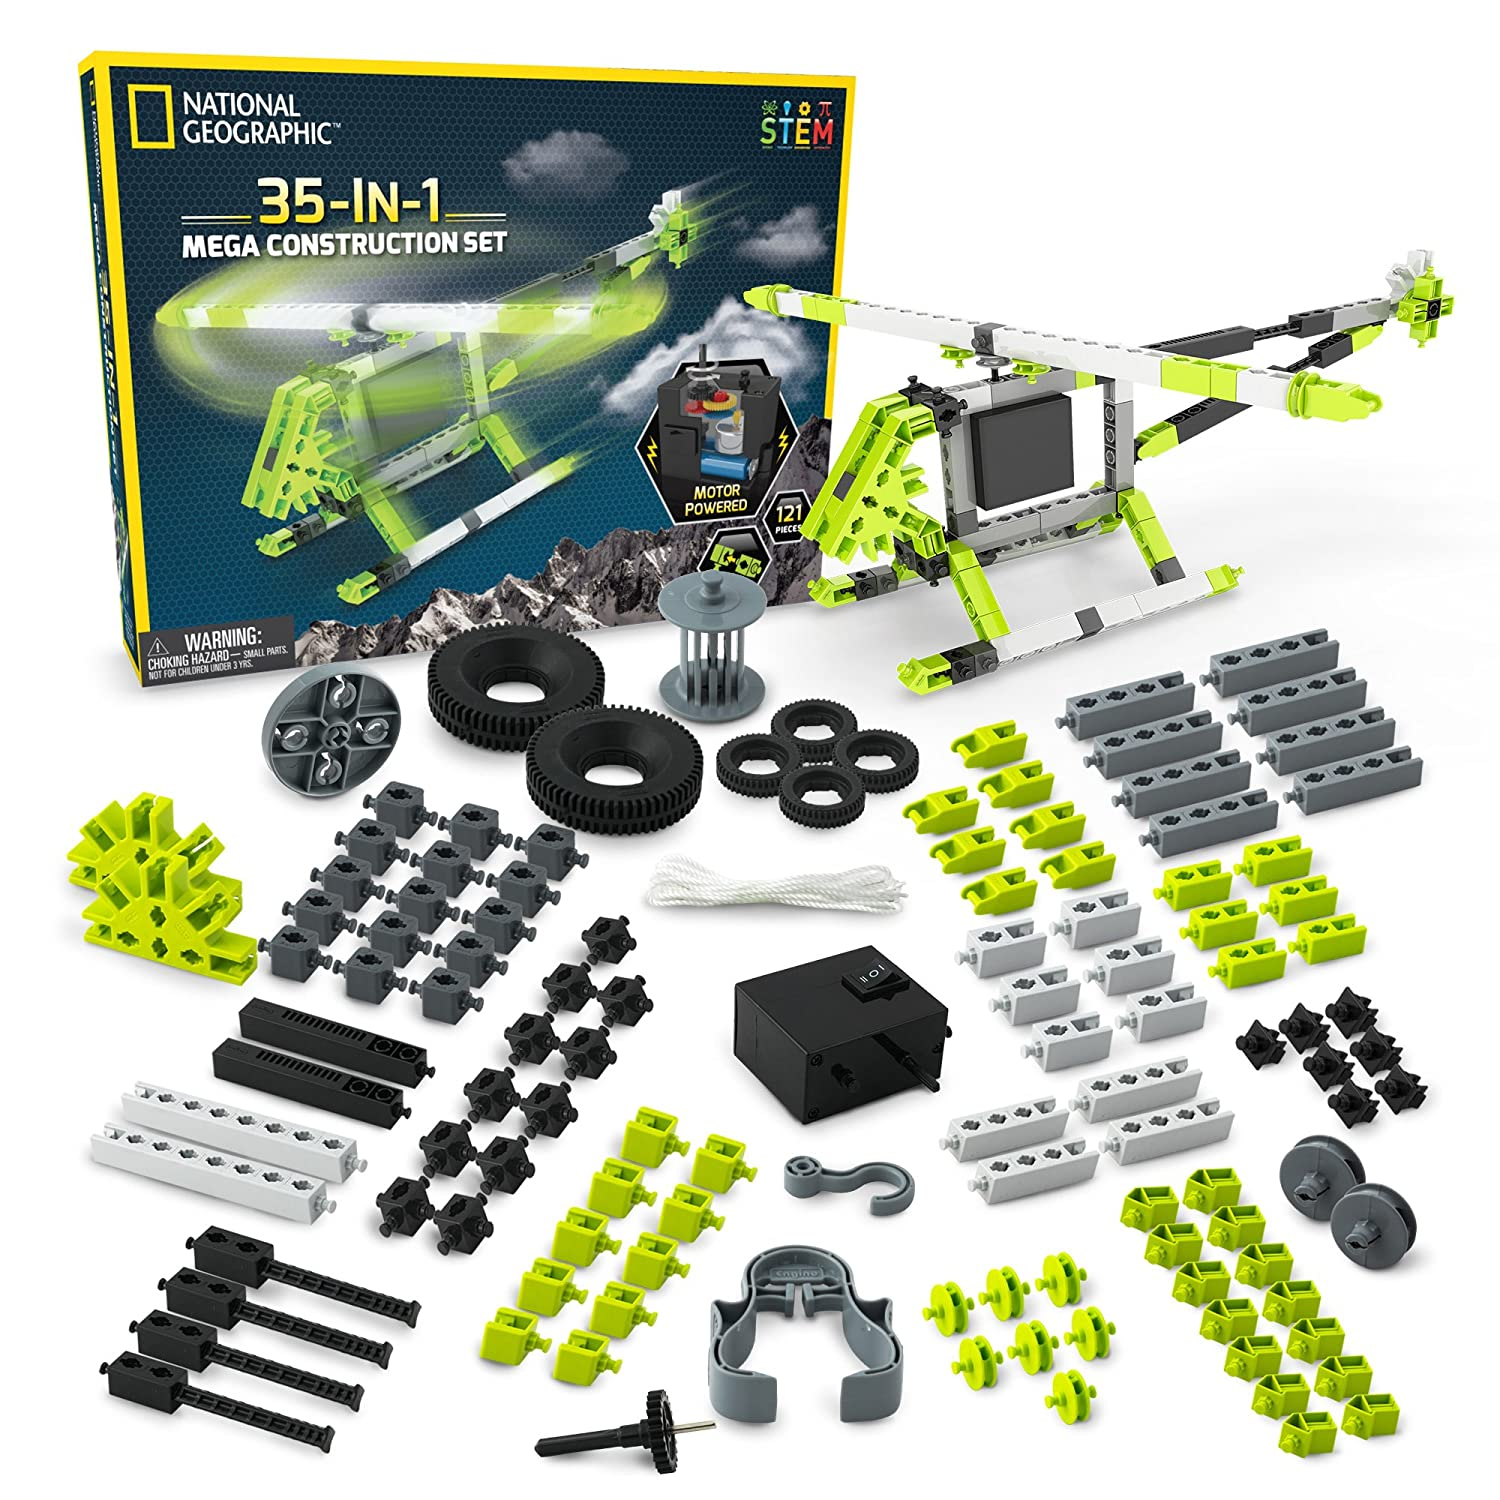 National Geographic Mega Construction Engineering Set Circuit Kit Free Download Build 35 Unique Motorized Models Helicopters Cars Animals And More Stem Learning